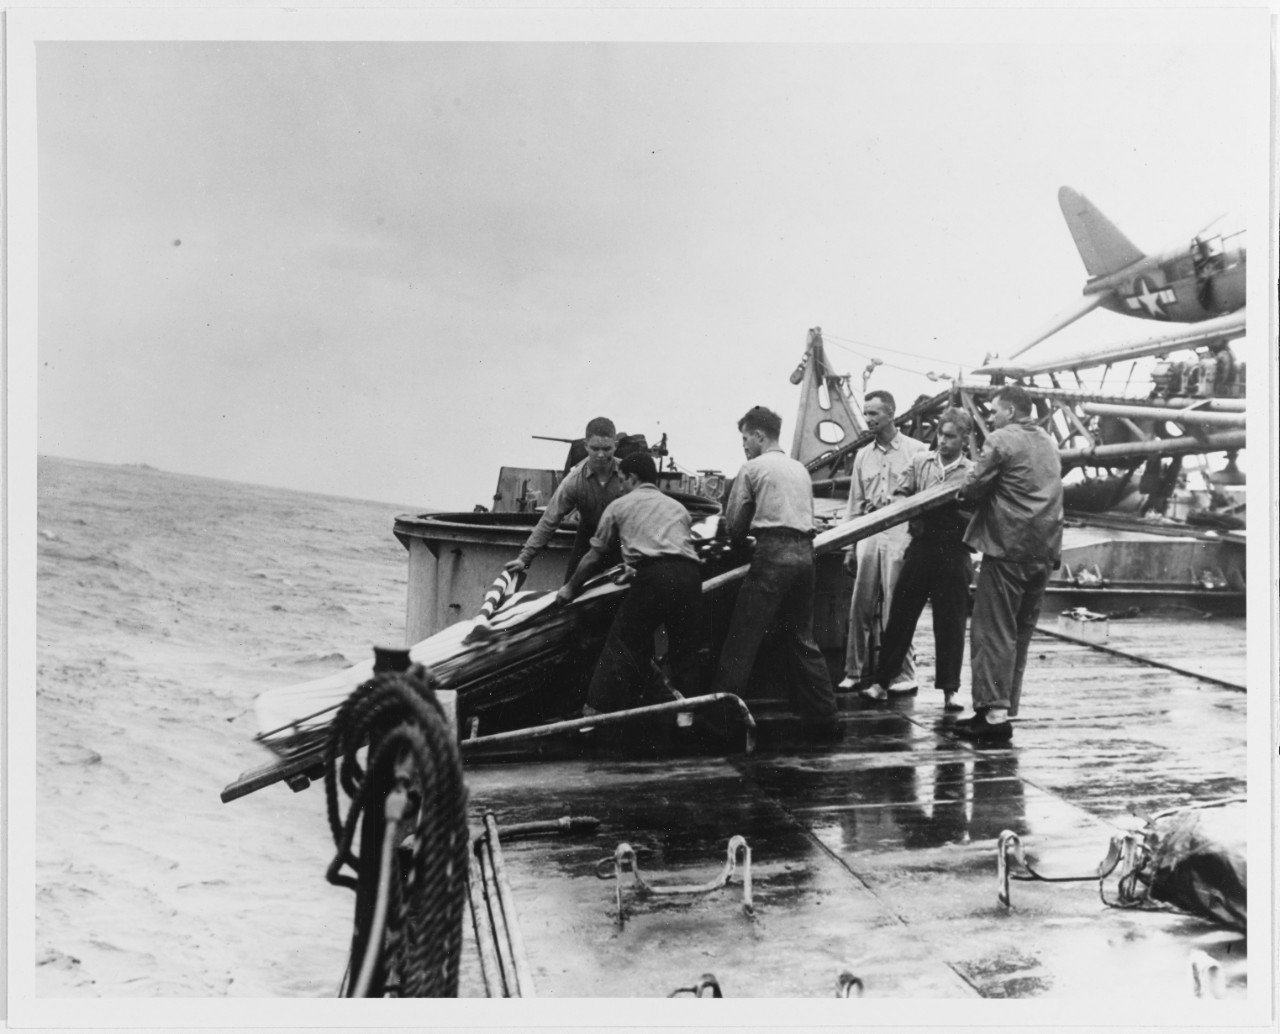 Burial at sea for crewmen killed when the ship was torpedoed off Formosa on 14 October 1944. Photographed while Houston was under tow on 15 October.